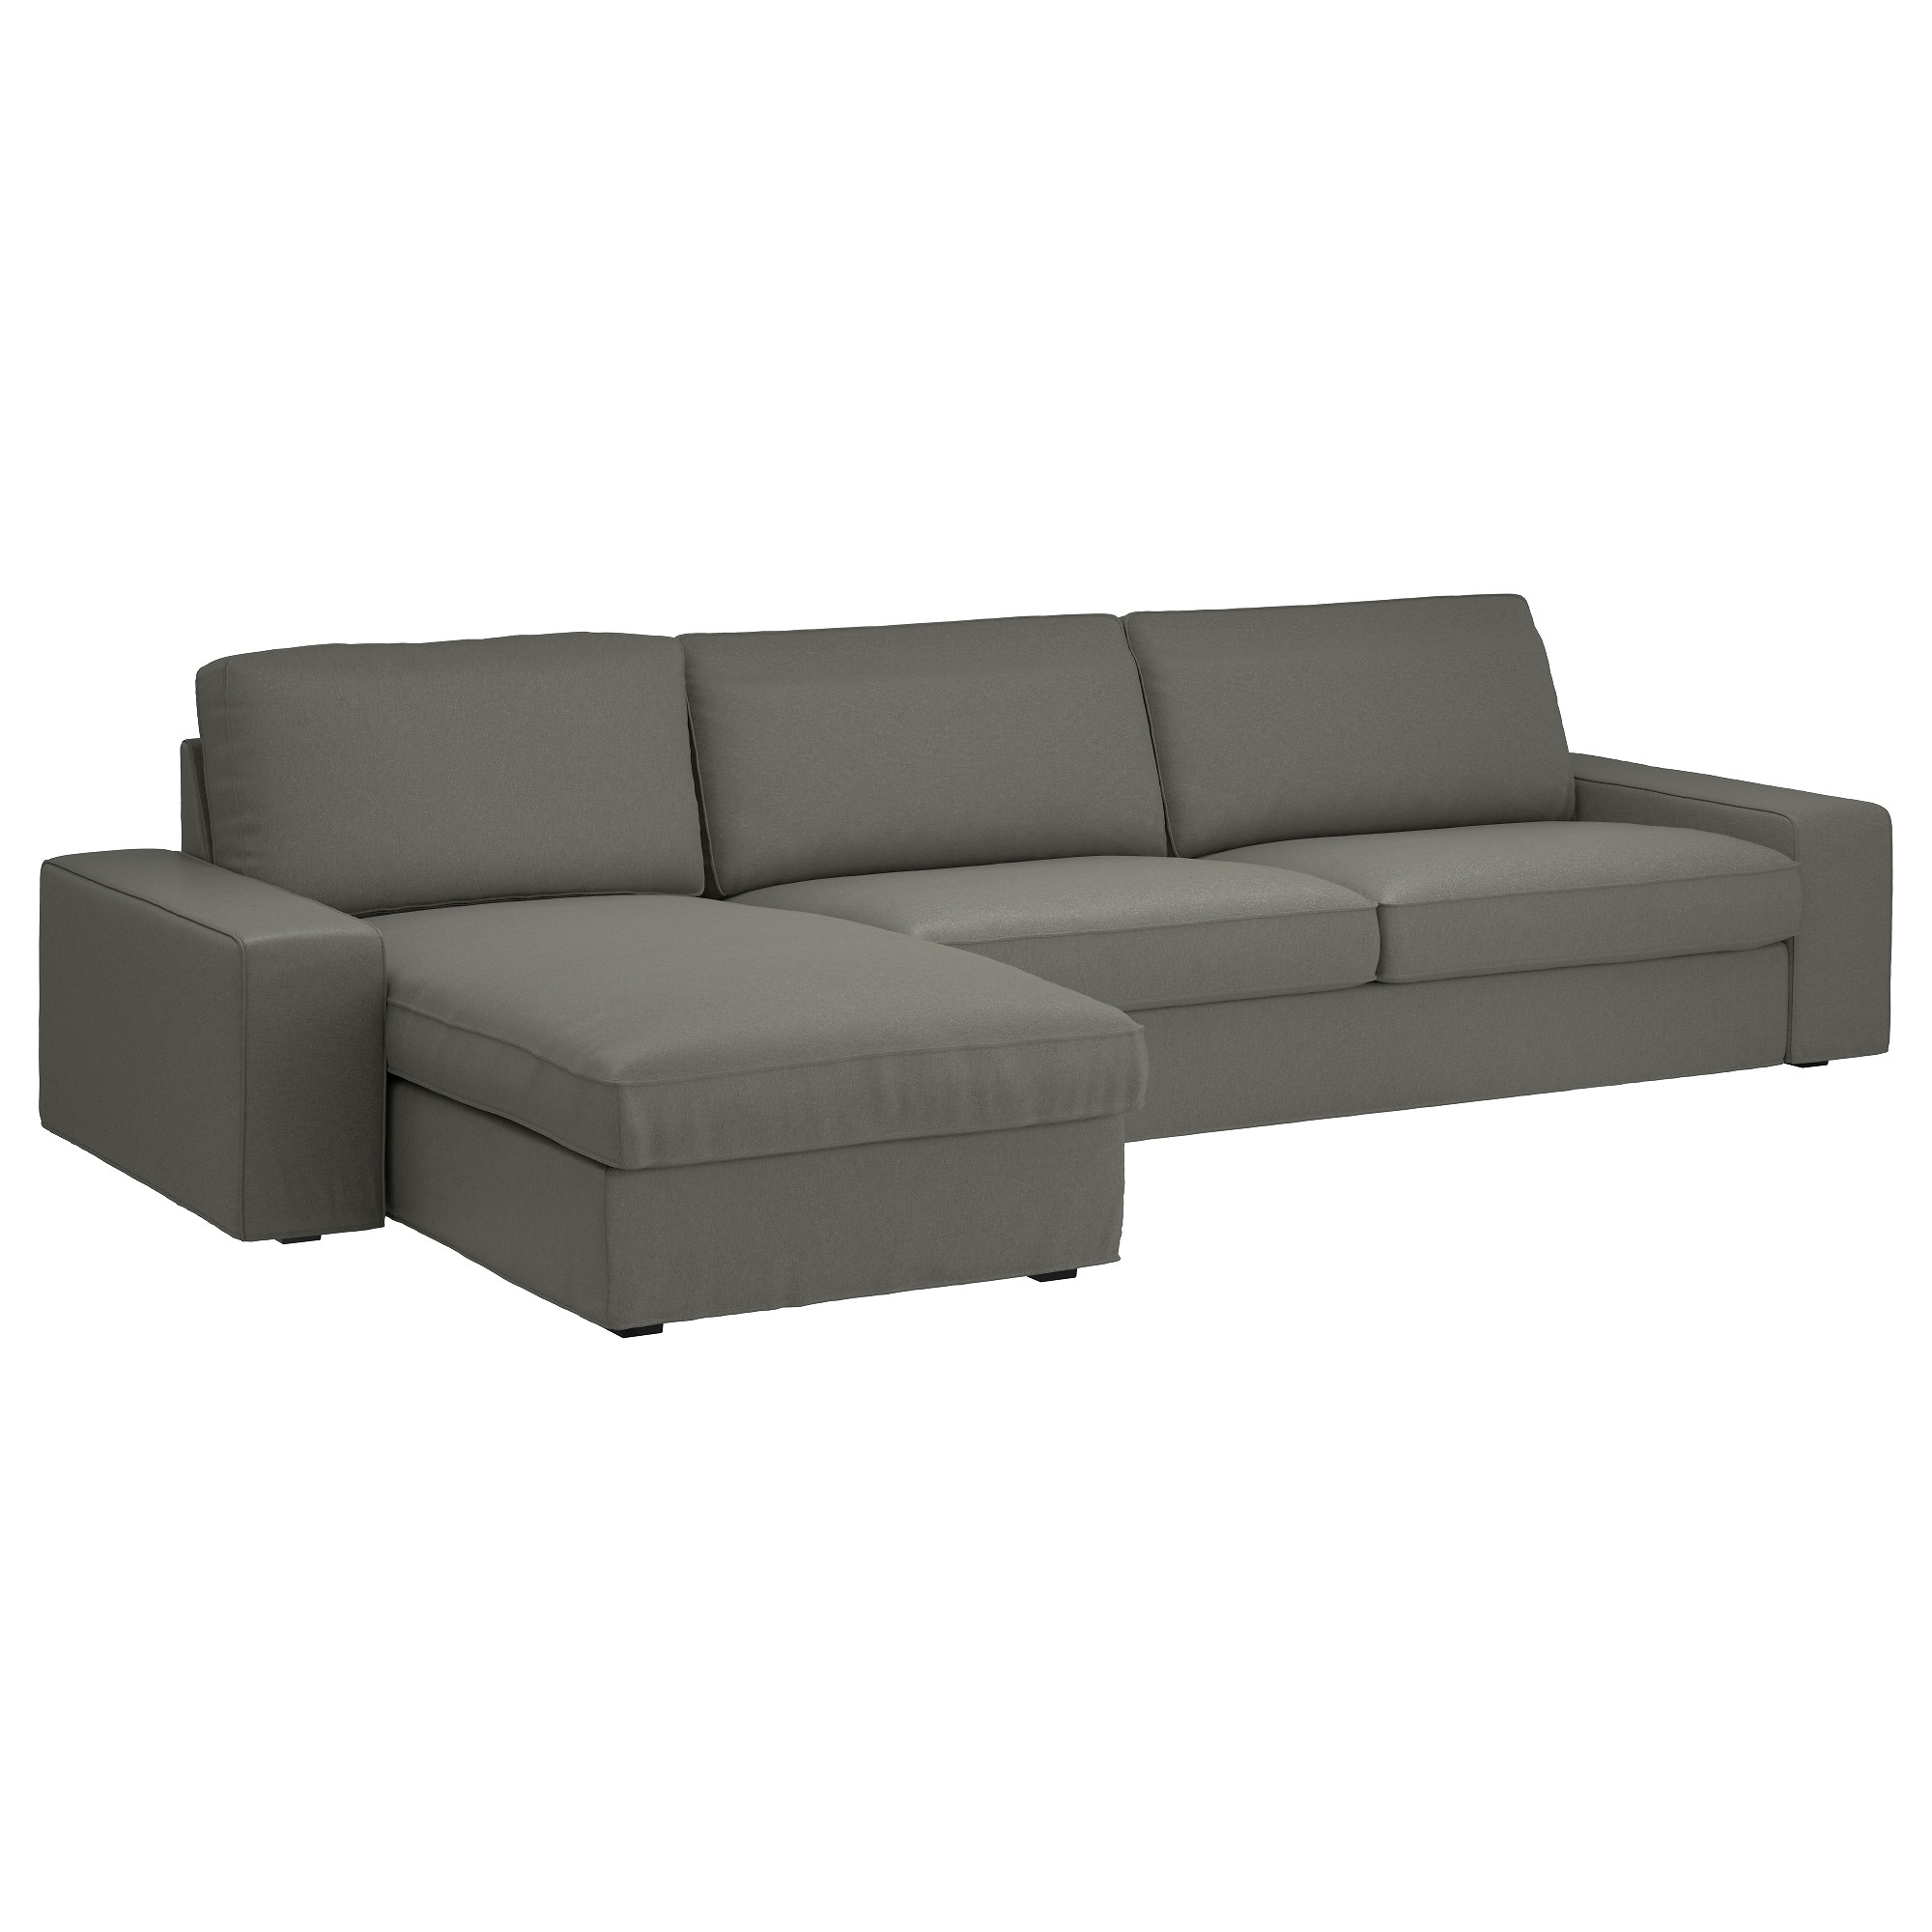 Ikea Chaise Lounges For Popular Kivik Sectional, 4 Seat – Hillared Beige – Ikea (Gallery 5 of 15)